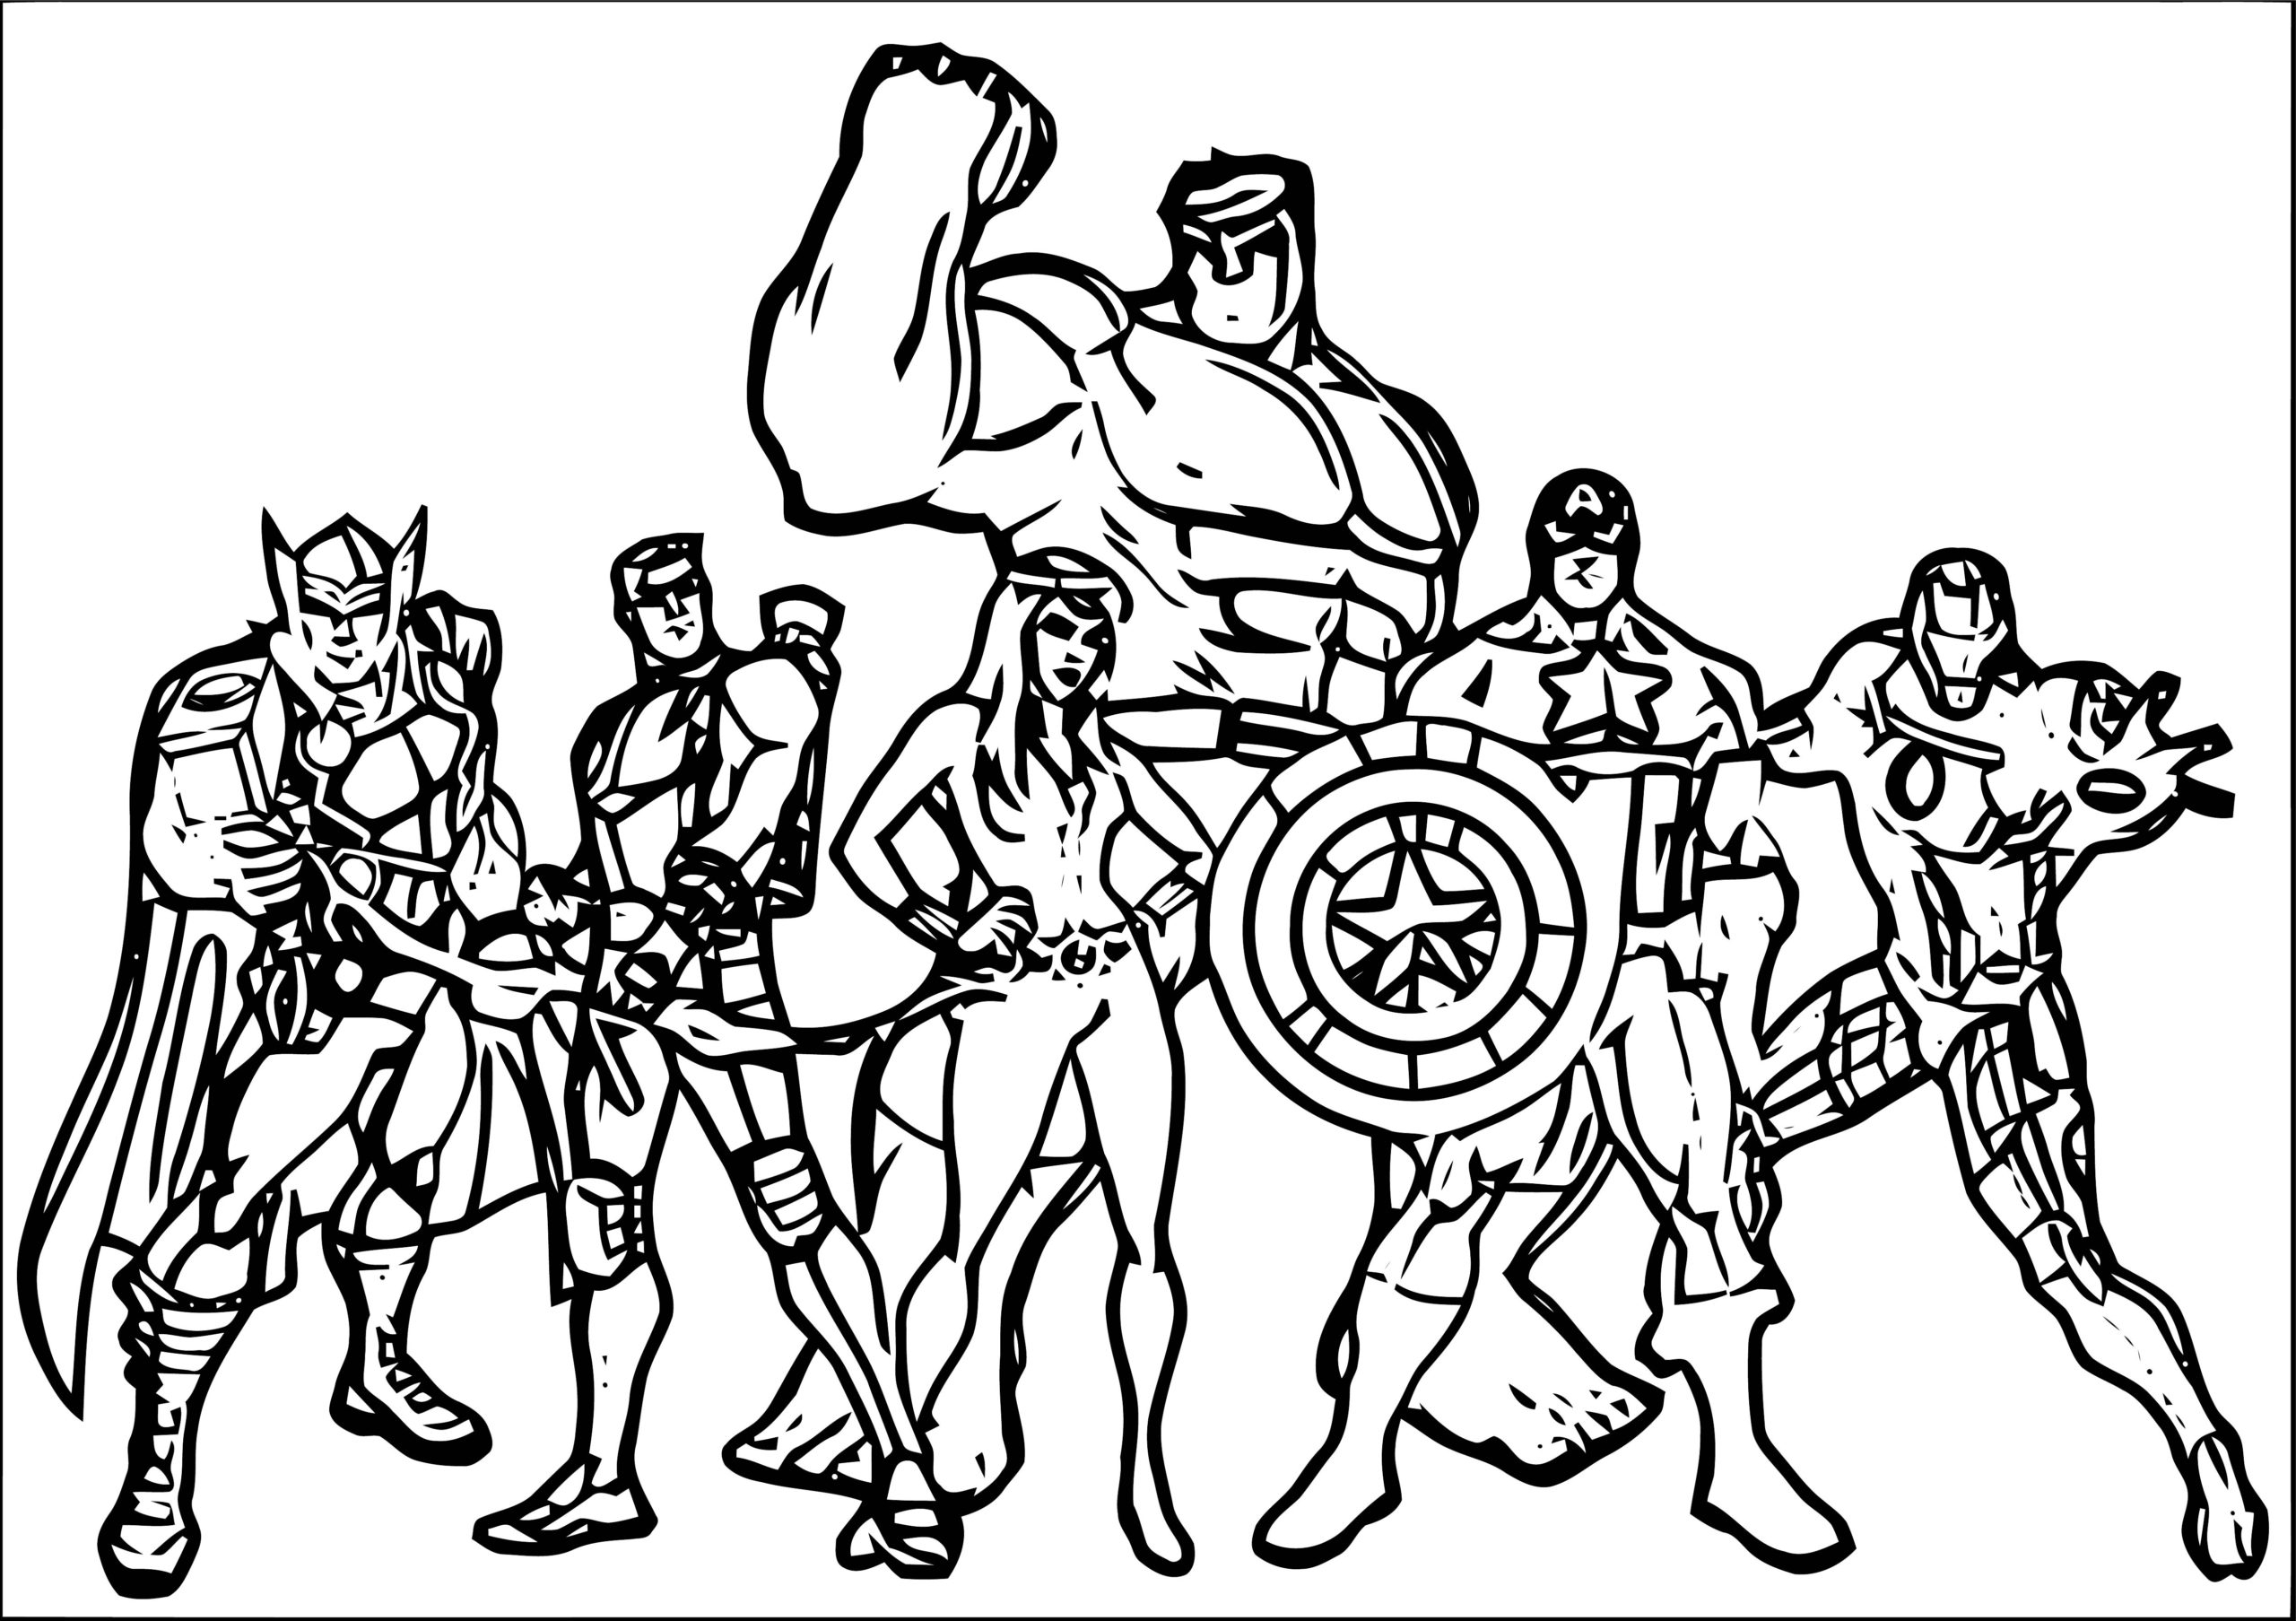 avengers coloring book pages avengers infinity war coloring pages printable printall pages coloring book avengers